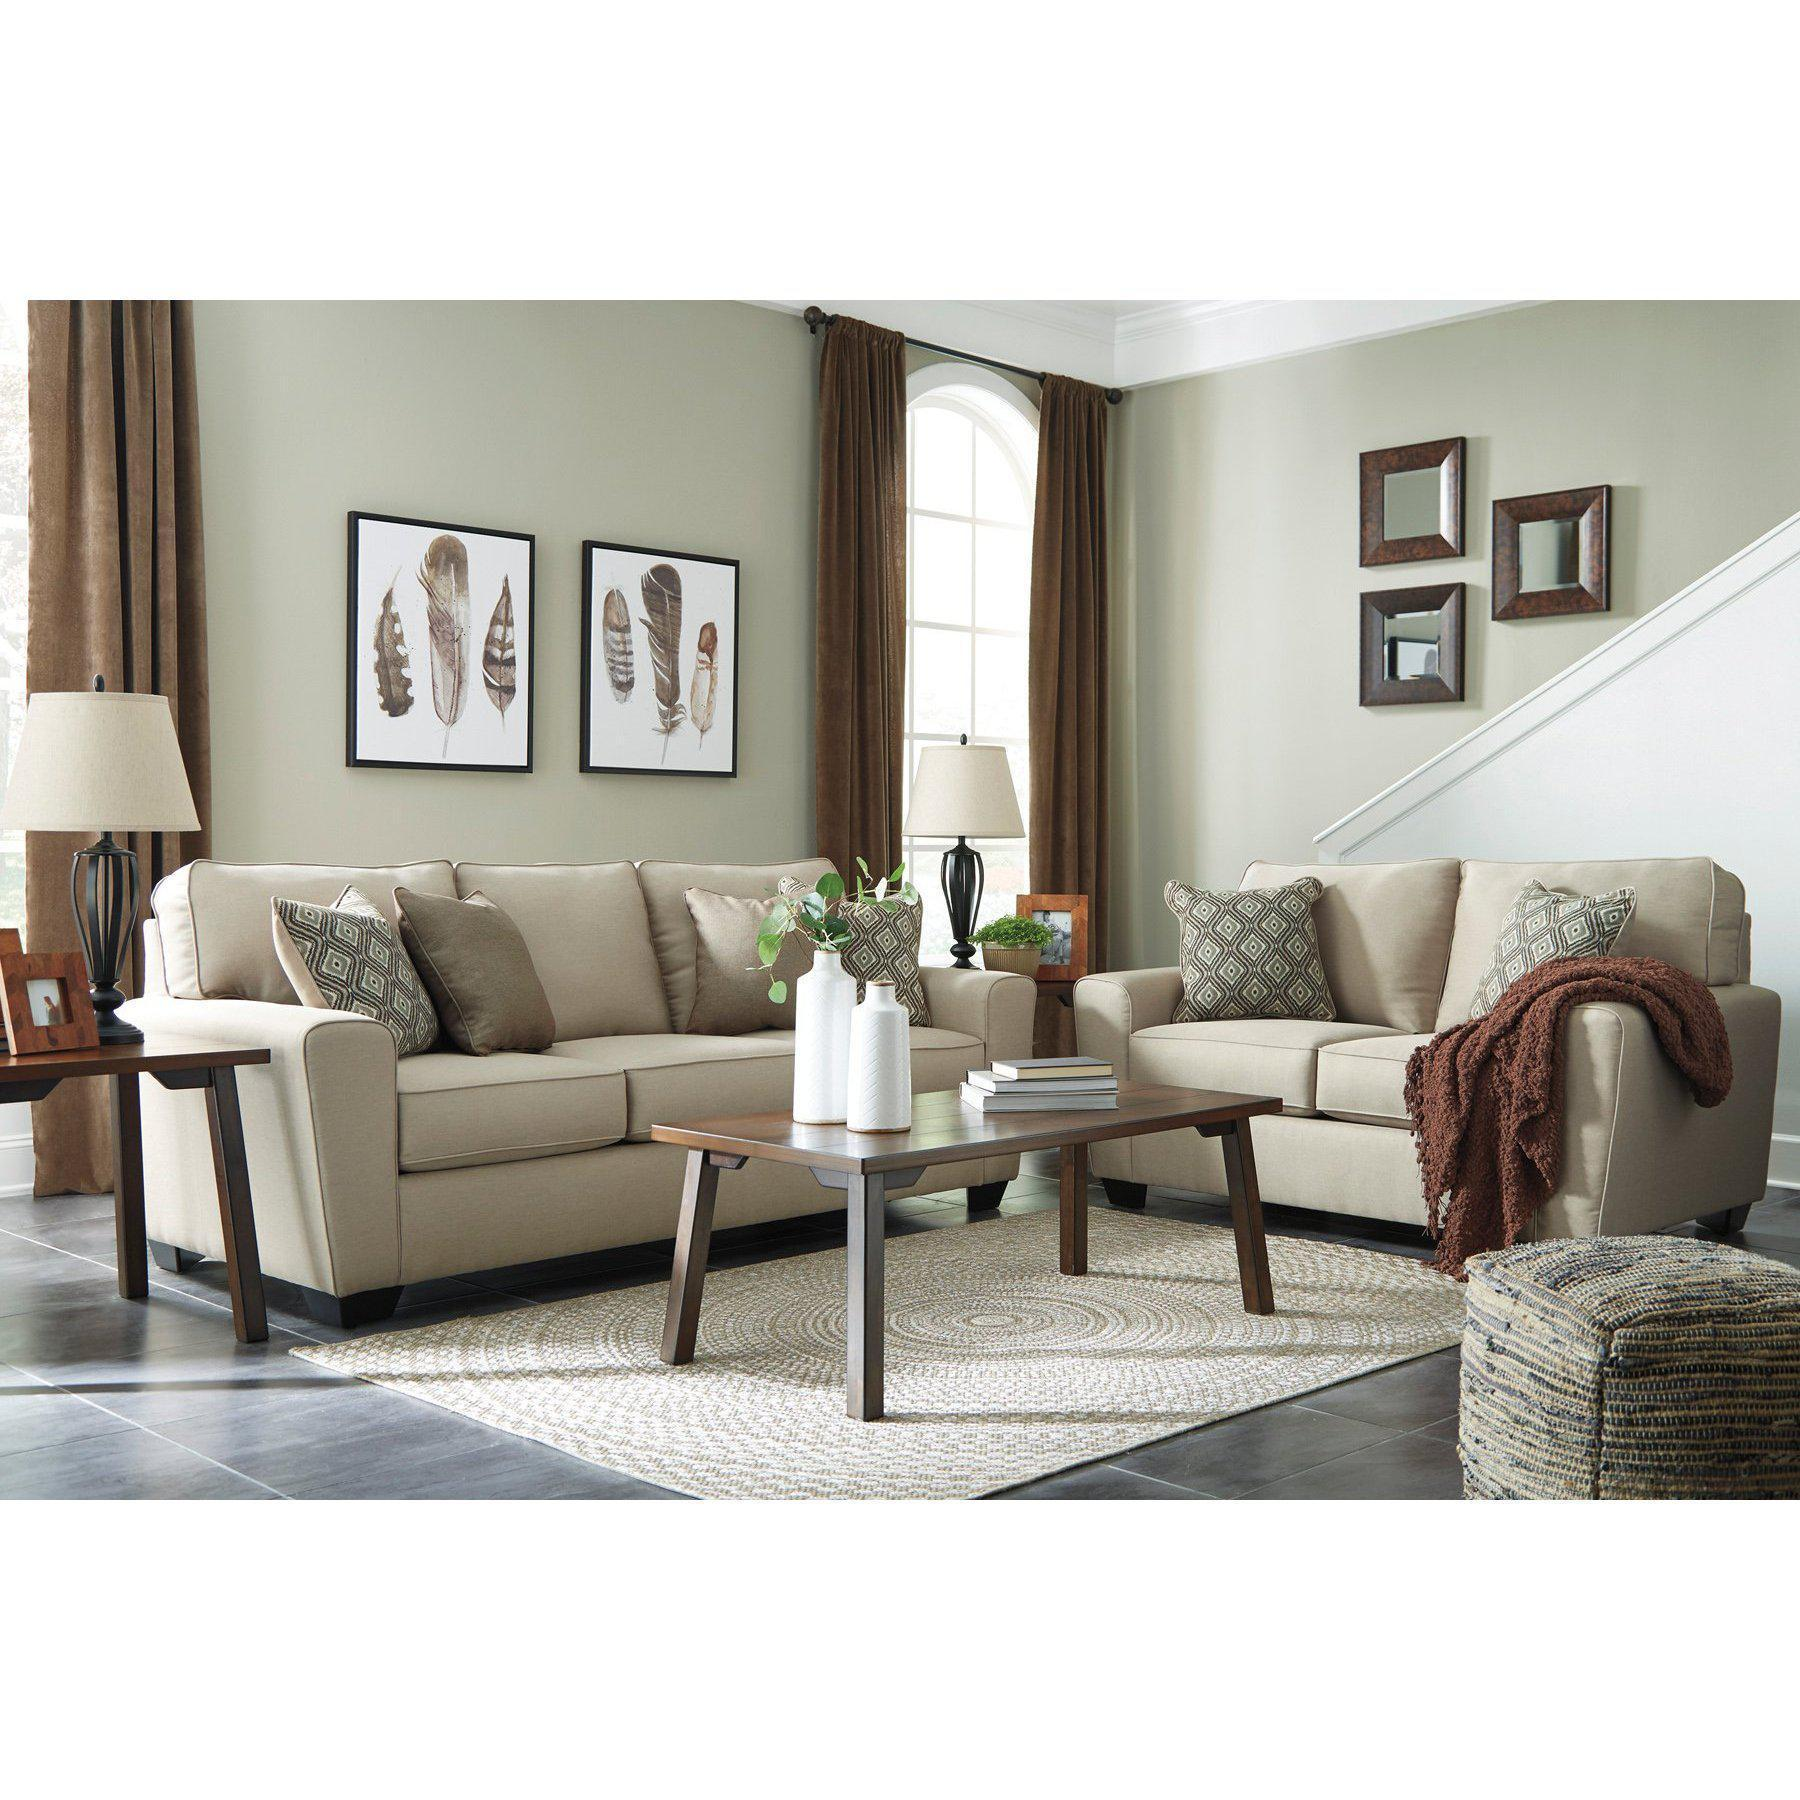 Calicho Living Room Set